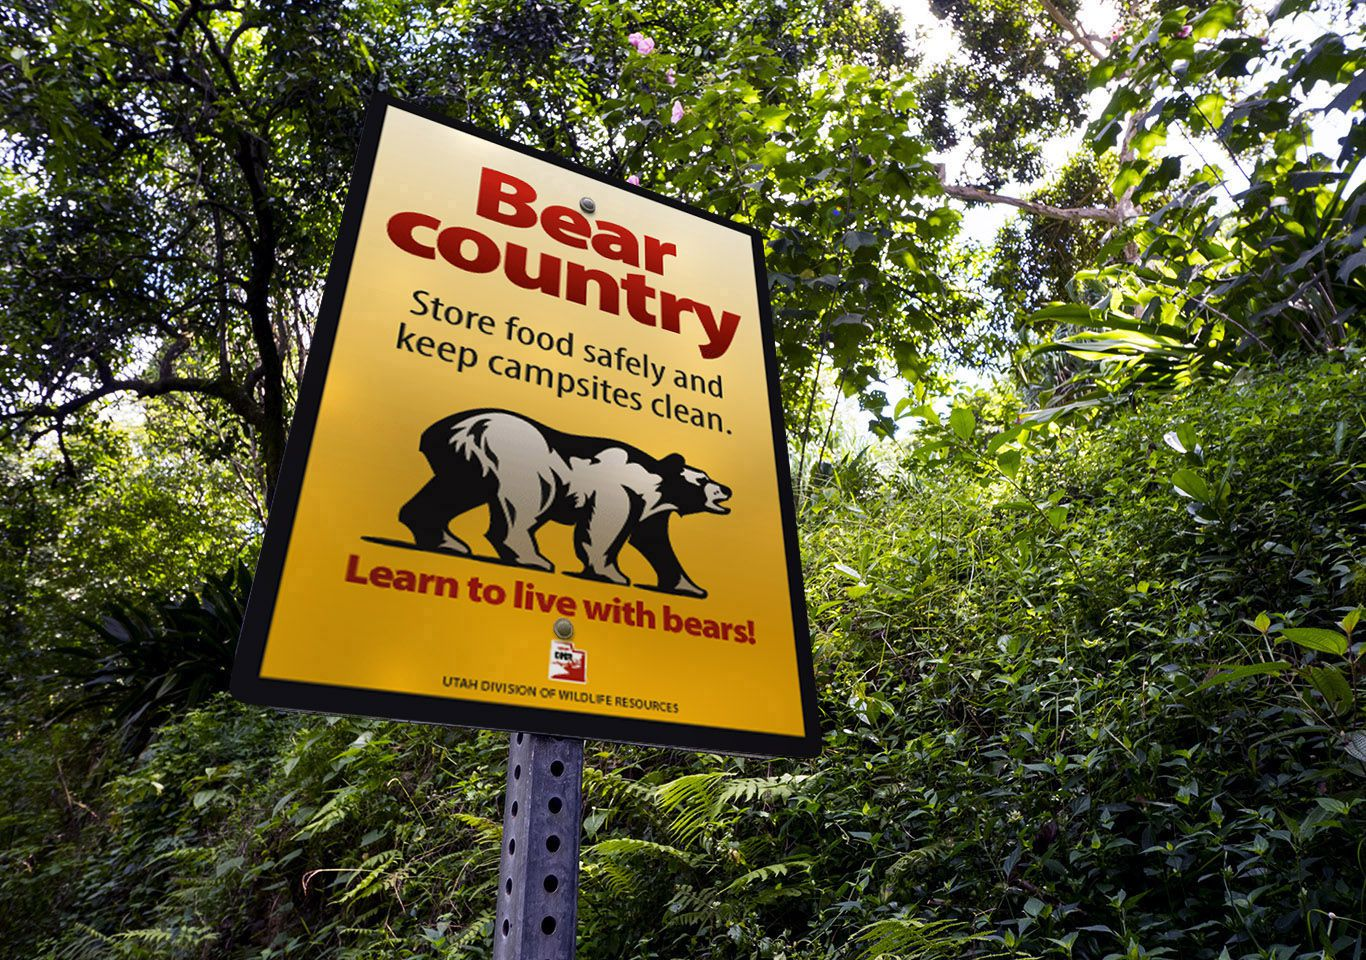 Utah's bears are out in force this year so clean up and don't feed them